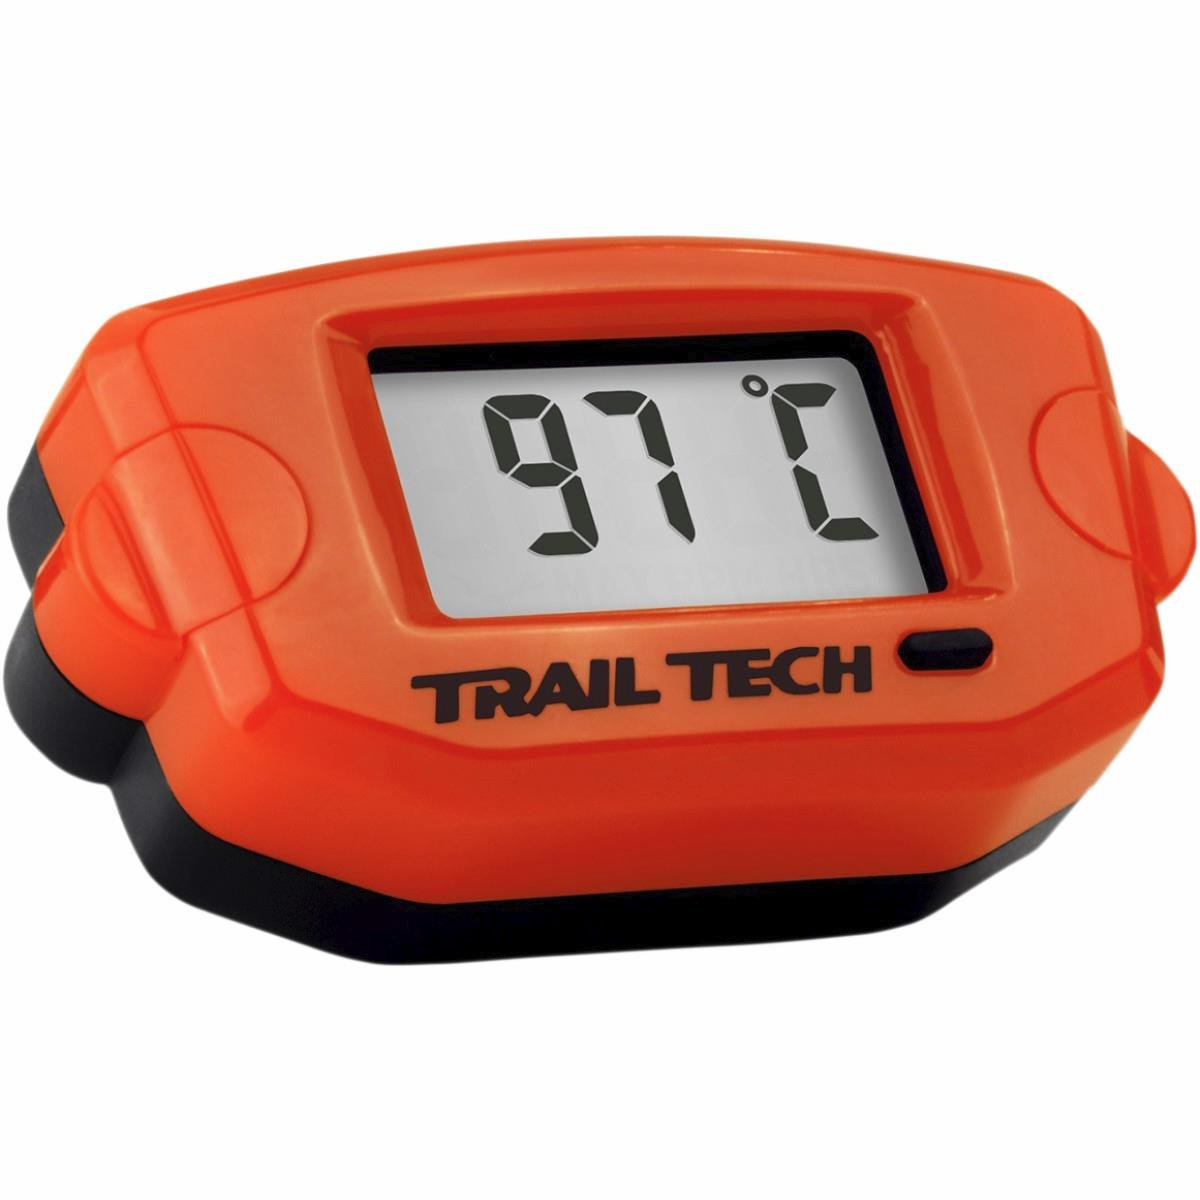 Trail Tech Surface Mount Universal Temperature Meter w/ Fin Sensor - 7mm - Orange 743EF4